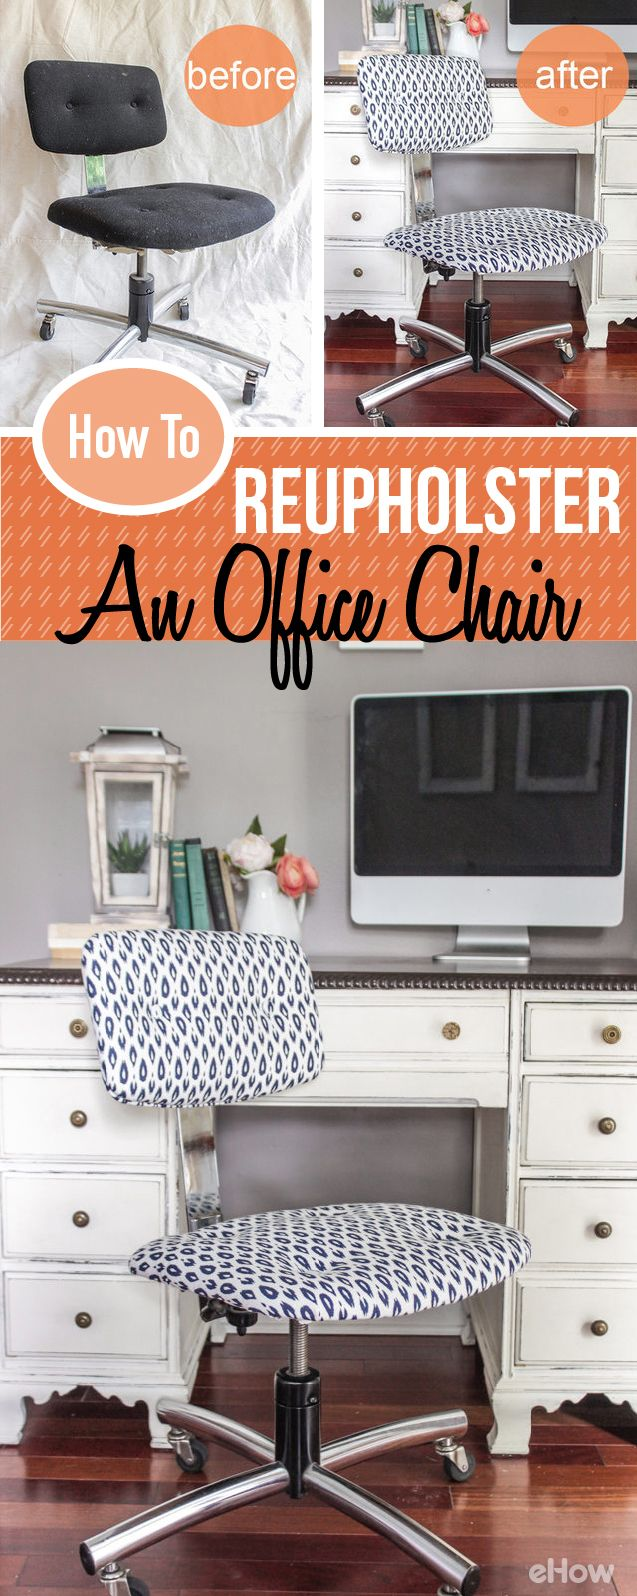 Transform your old, ugly office chair into a nice, trendy new one with some simple reupholstering! No need This simple face lift will make going back to school or back to work a little more pleasant. Get the directions with pictures here: http://www.ehow.com/how_4853465_reupholster-office-chair.html?utm_source=pinterest.com&utm_medium=referral&utm_content=freestyle&utm_campaign=fanpage